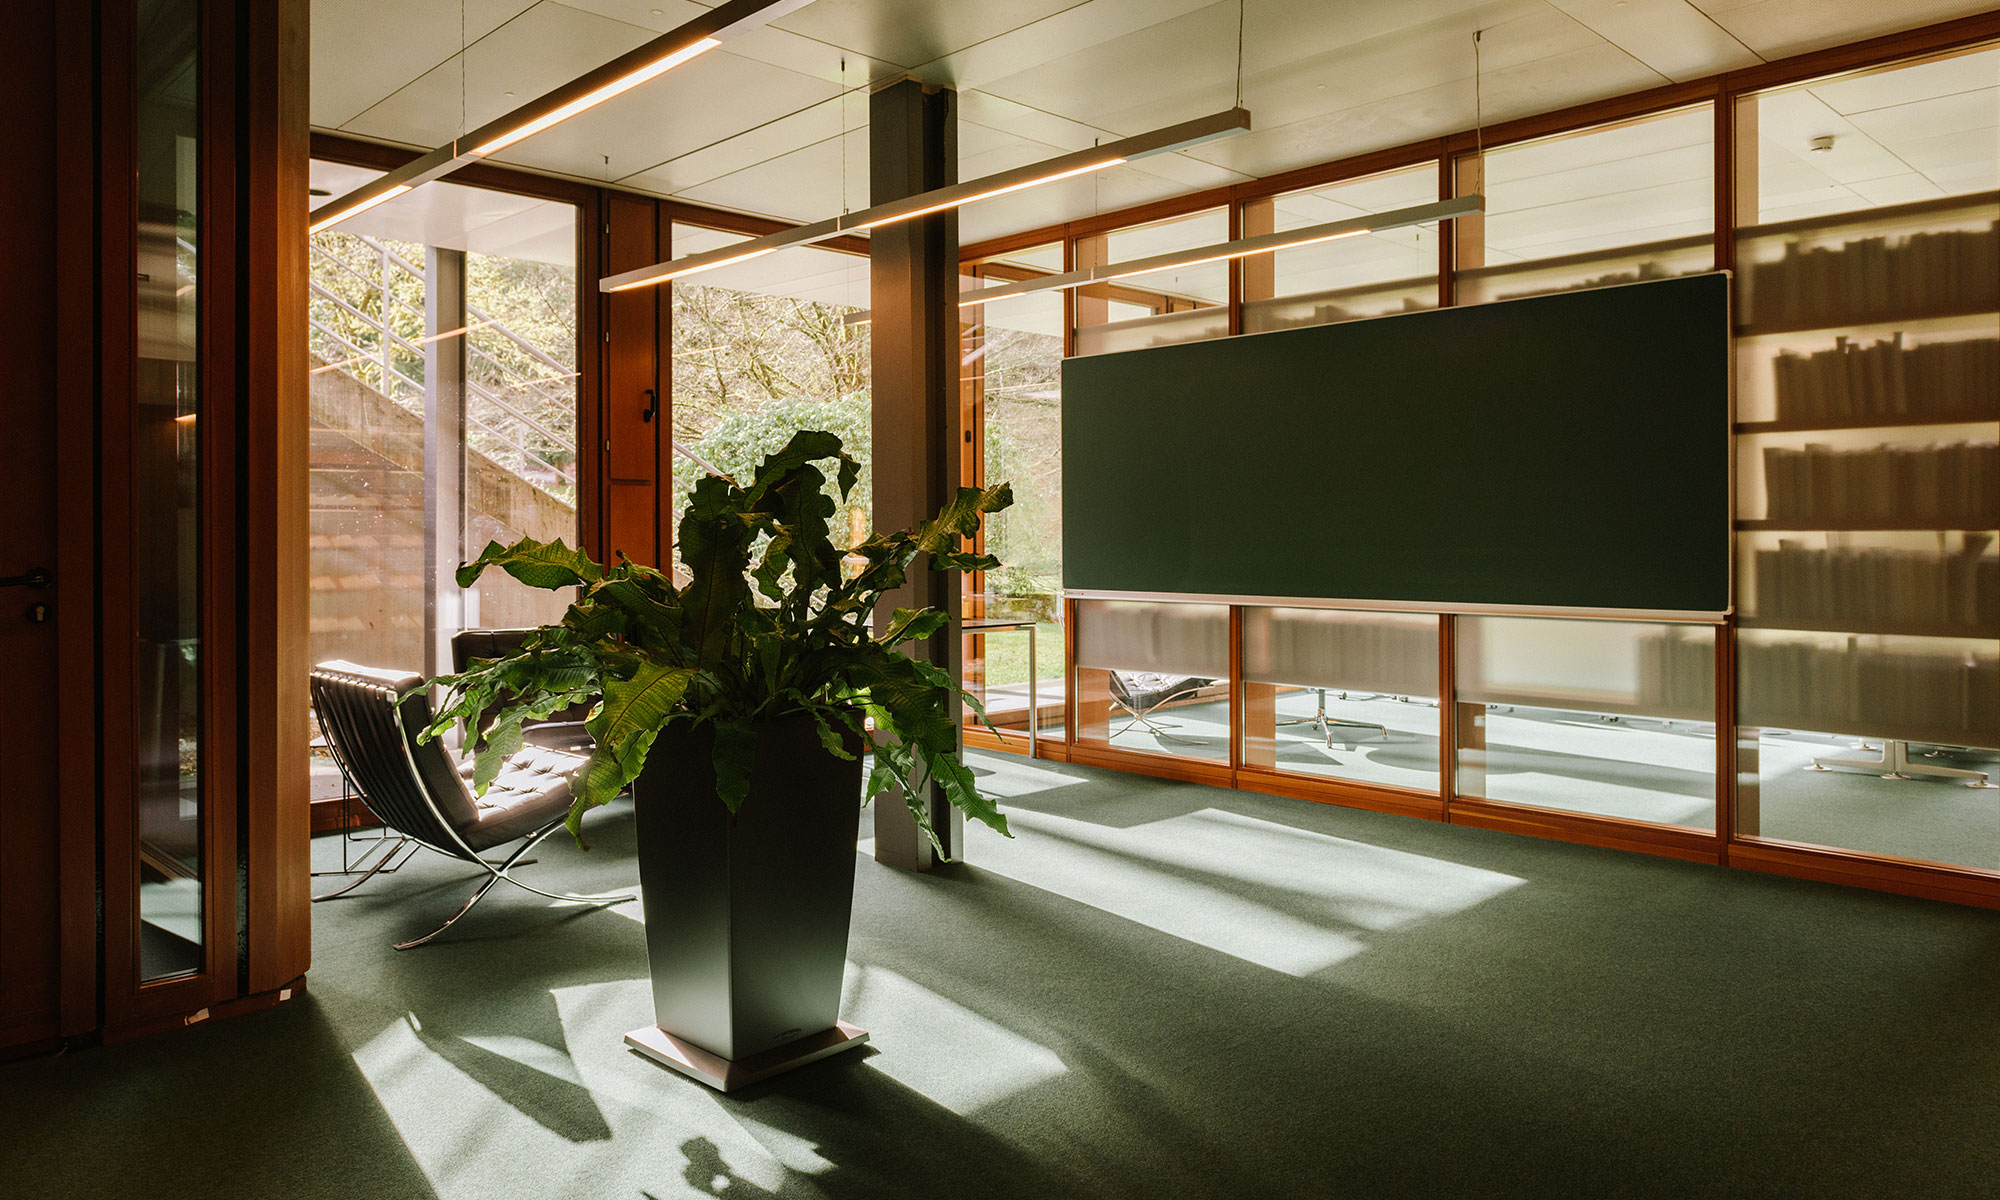 Photo of an empty room in a library at the Oberwolfach Research Institute for Mathematics